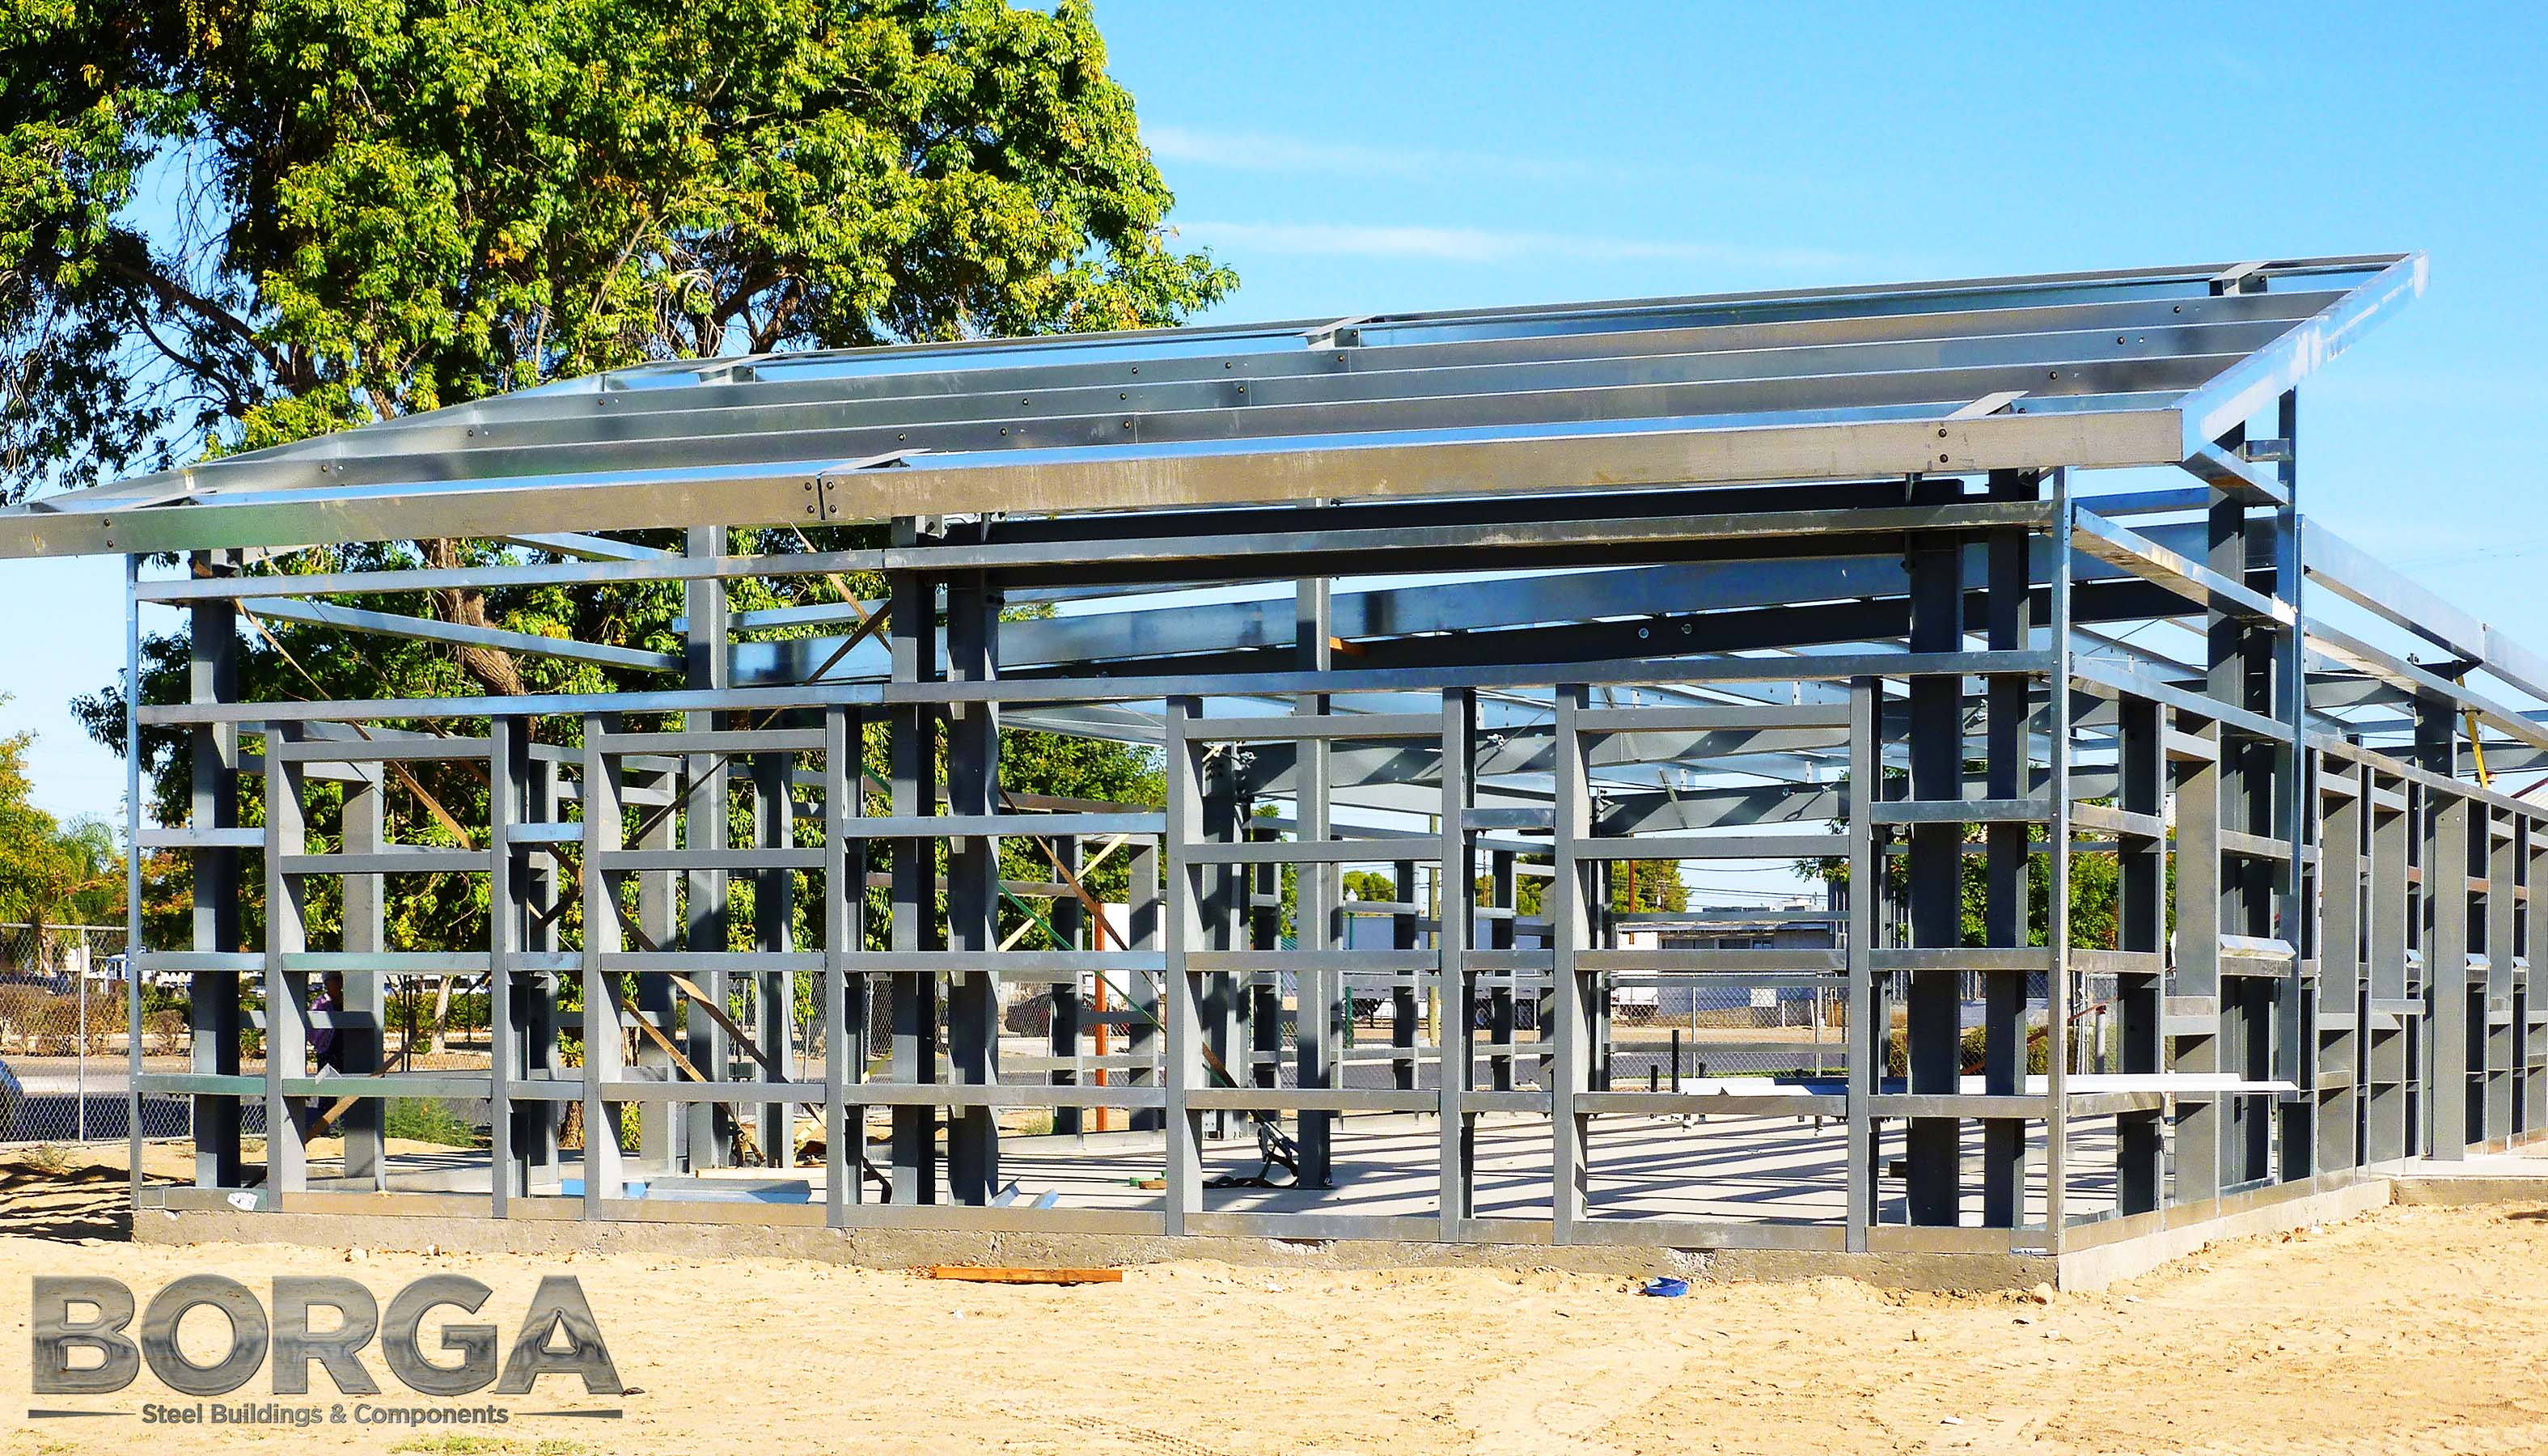 Borga Steel Buildings Components Metal Framing Huron Boys & Girls Club 2